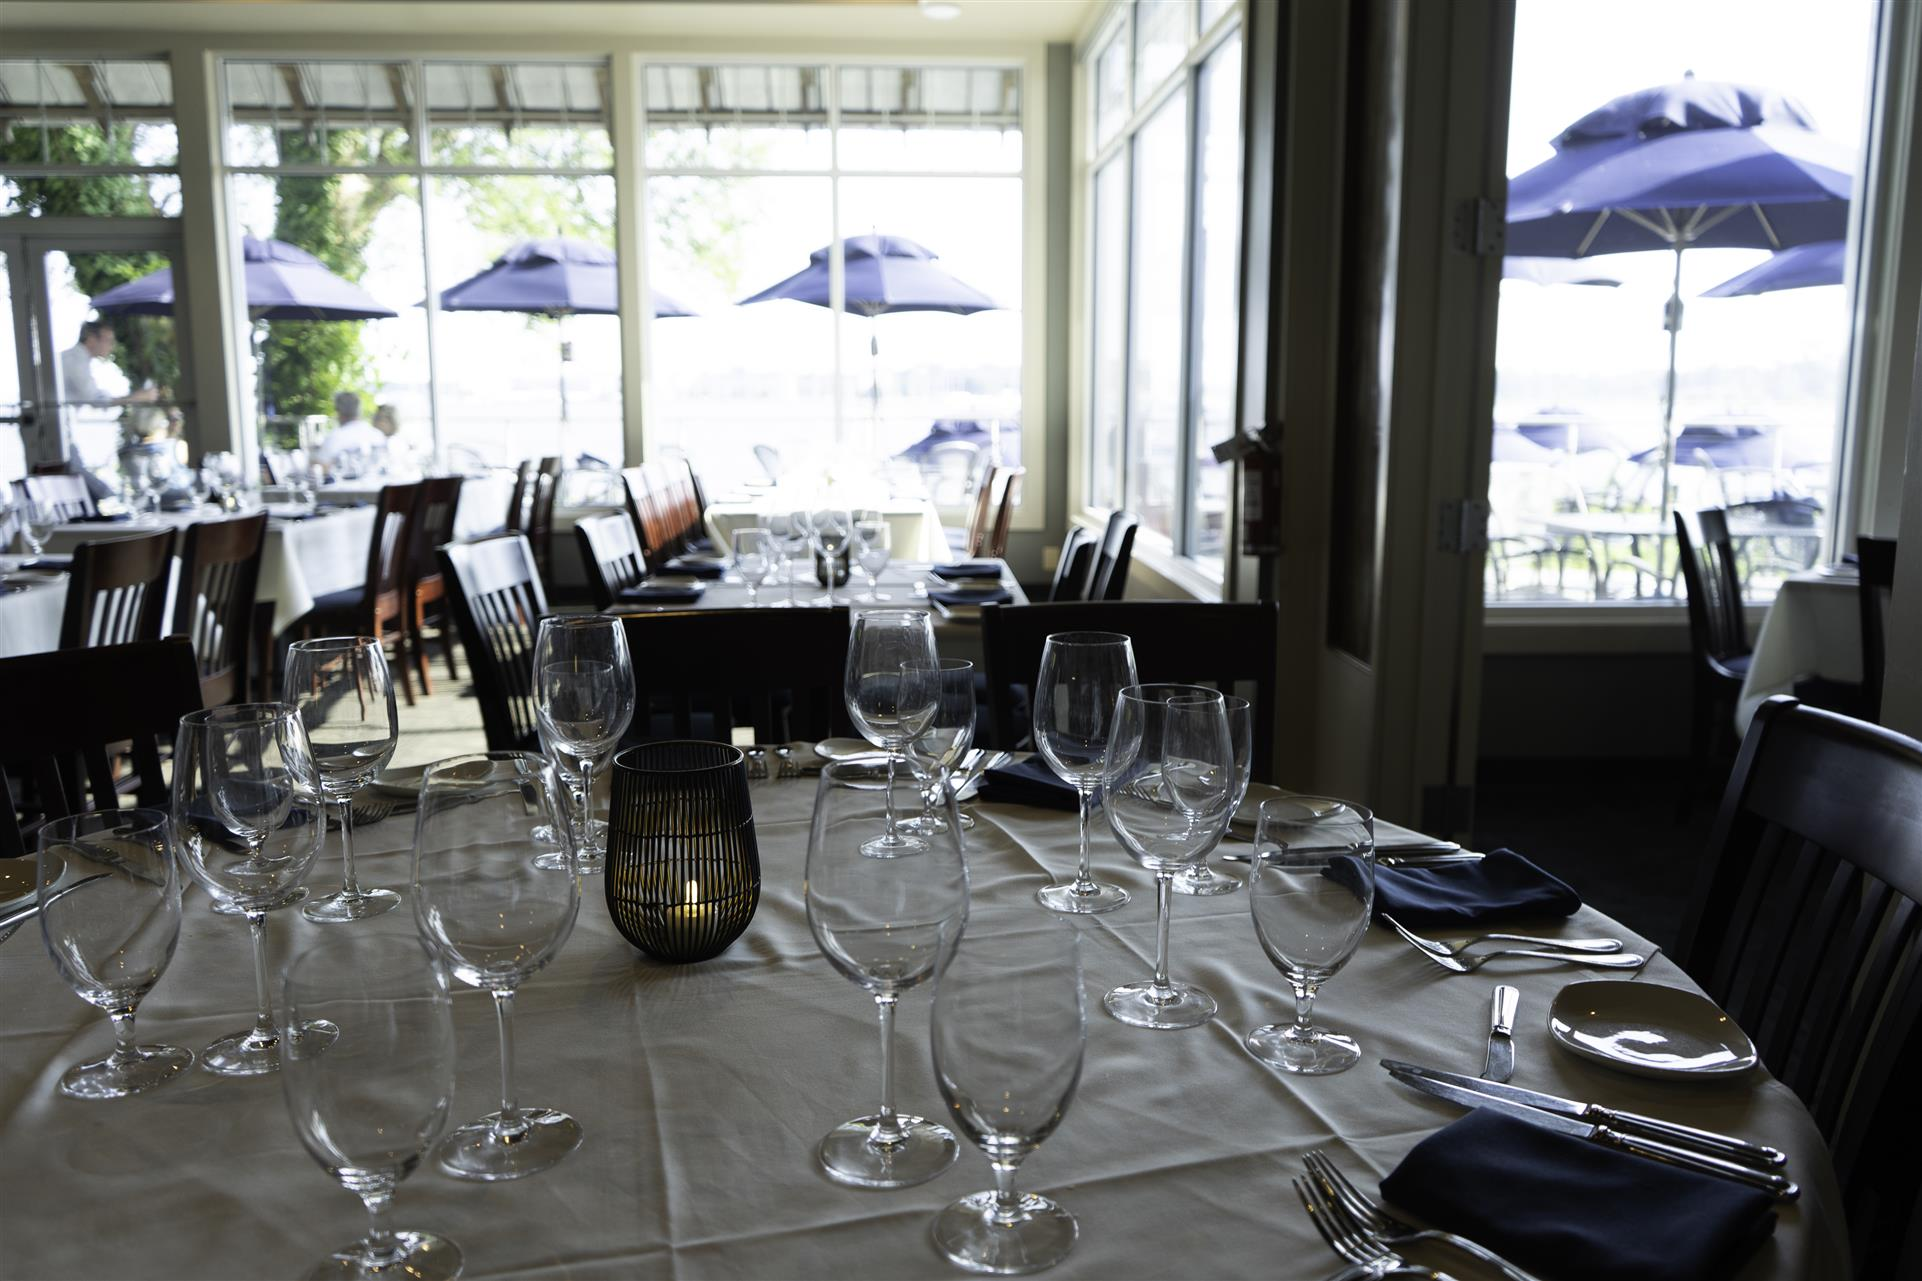 a white table cloth table with wine glasses and napkins